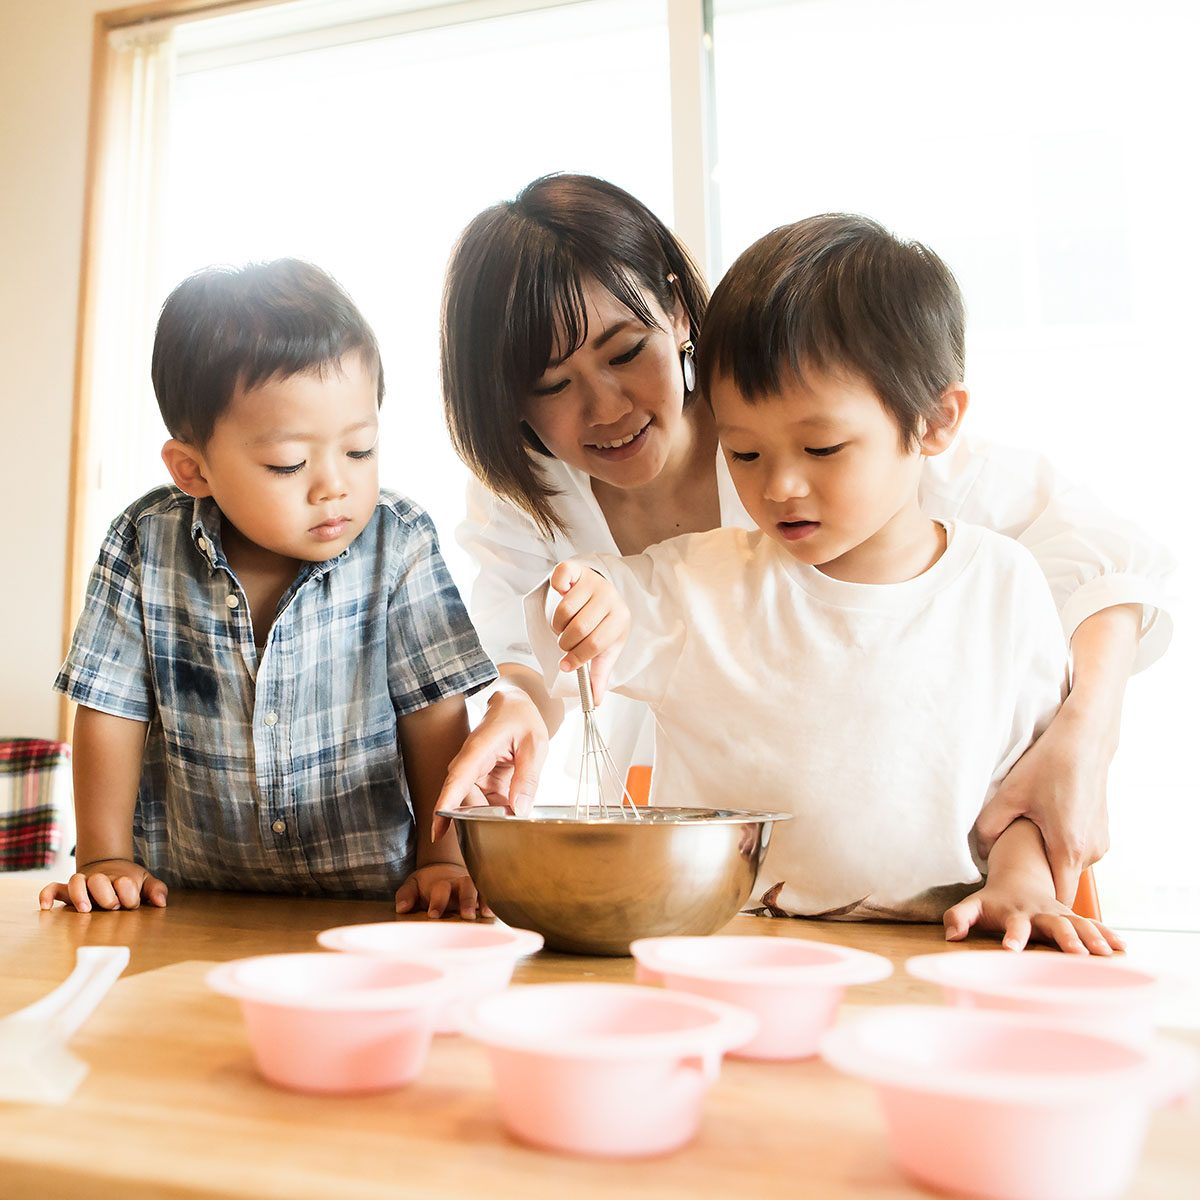 Mother and son cooking together - new years activities for kids